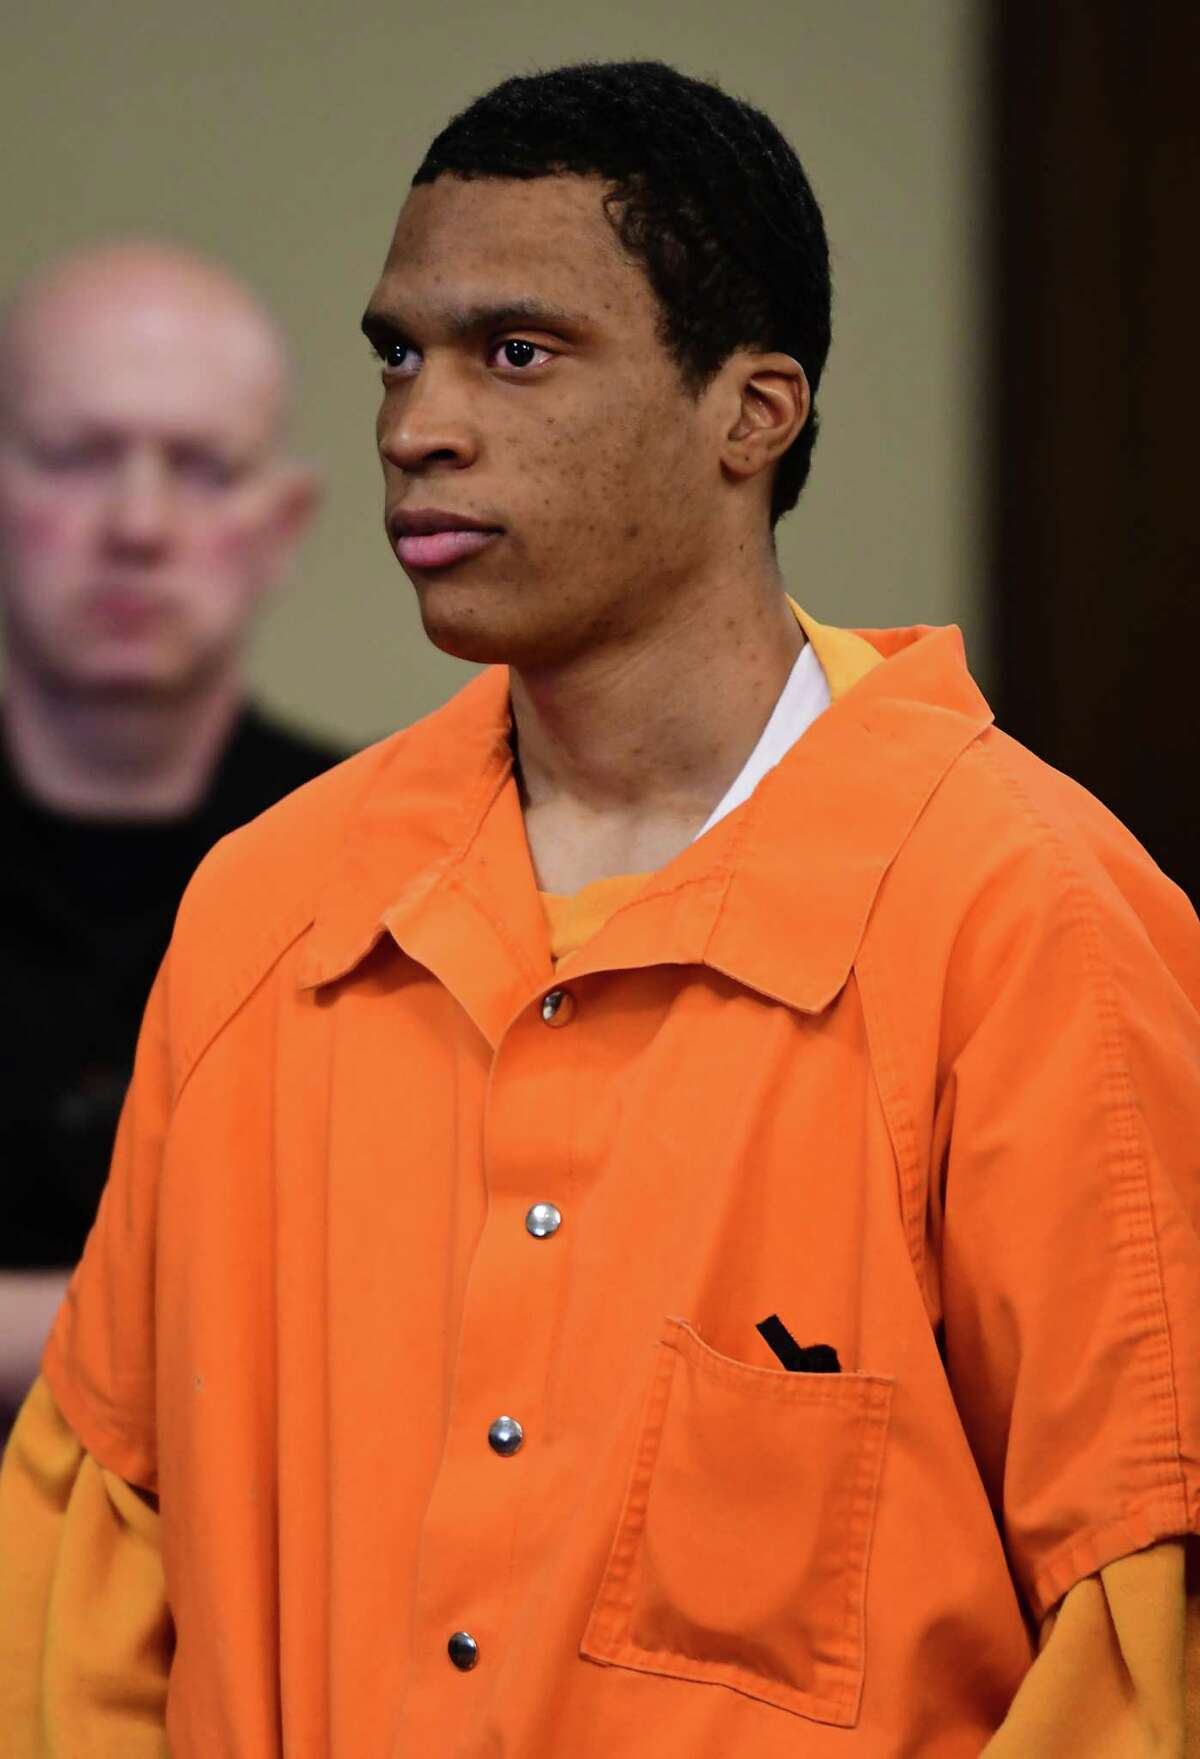 Justin Mann, 26, testified Friday at the murder trial of former co-defendant James White who faces life in prison without possibility of parole if he is convicted of killing two women and two children two years ago in Troy's Lansingburgh. (Lori Van Buren/Times Union)